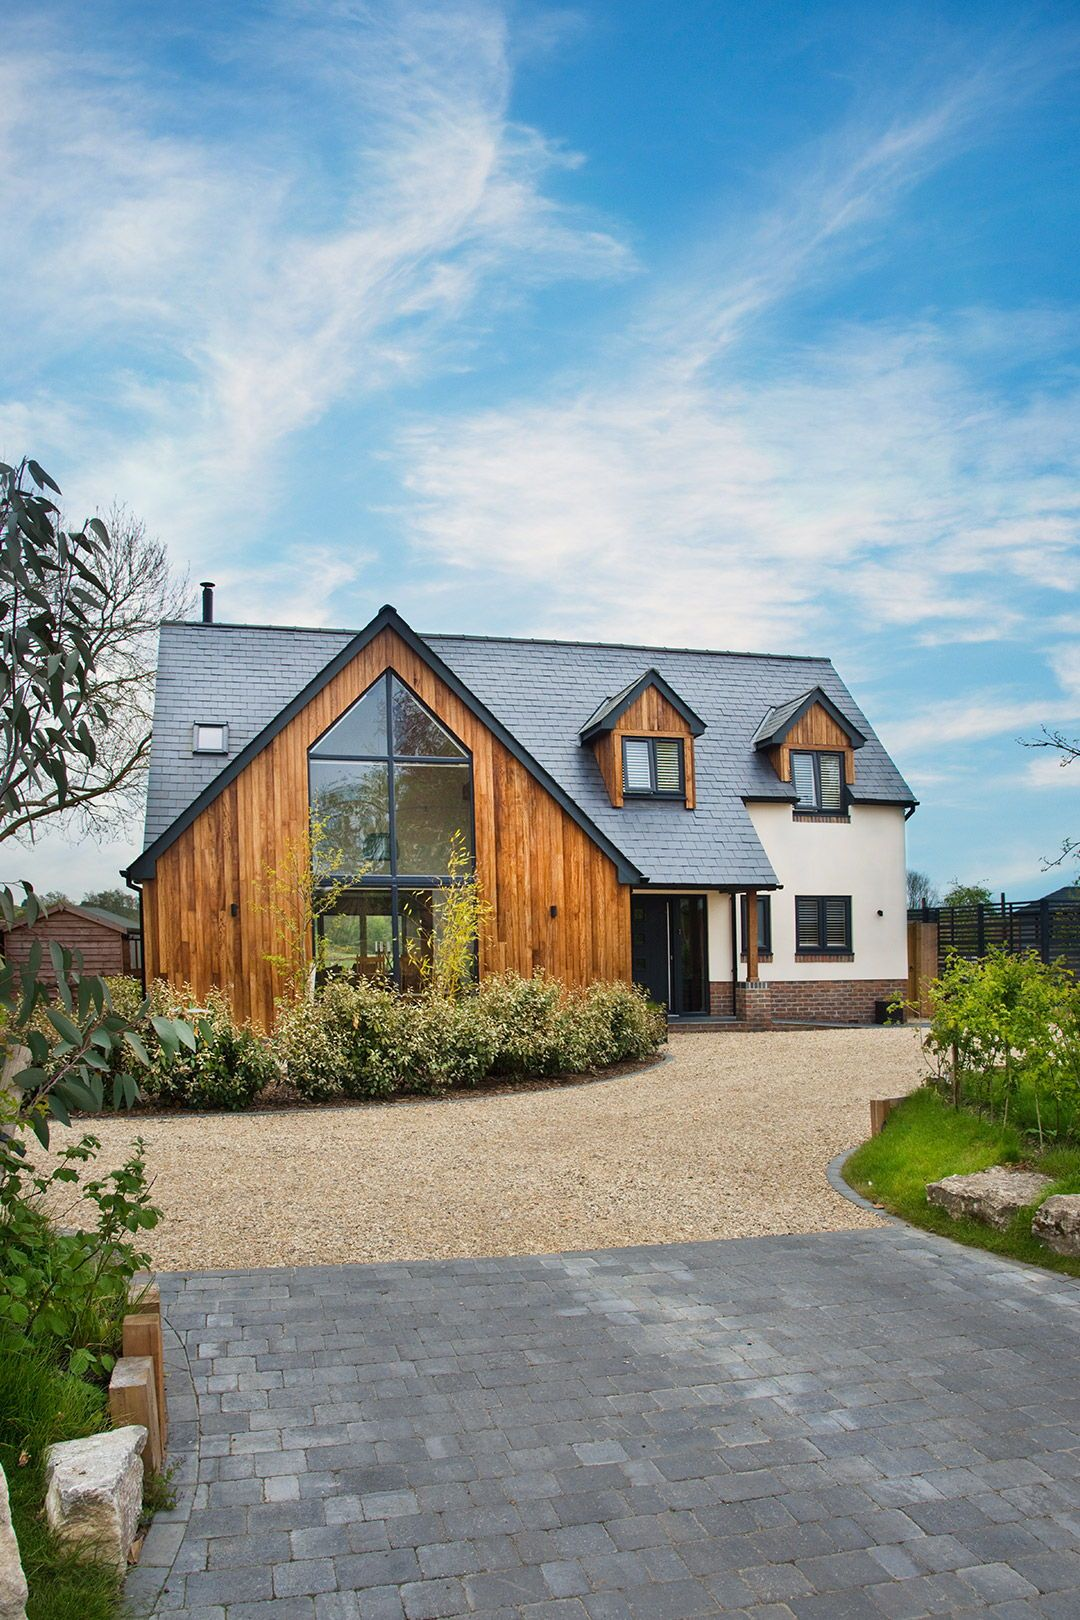 Budget House Builds. This Potton Home was built for £295,000. Its a modern cottage with white render and timber cladding. Read Dennis & Maureen Stephens full self-build story here ... #budgetbuild #pottonhome #timberframe #timbercladding #buildingahouse #costofbuildingahouse #dreamhouses